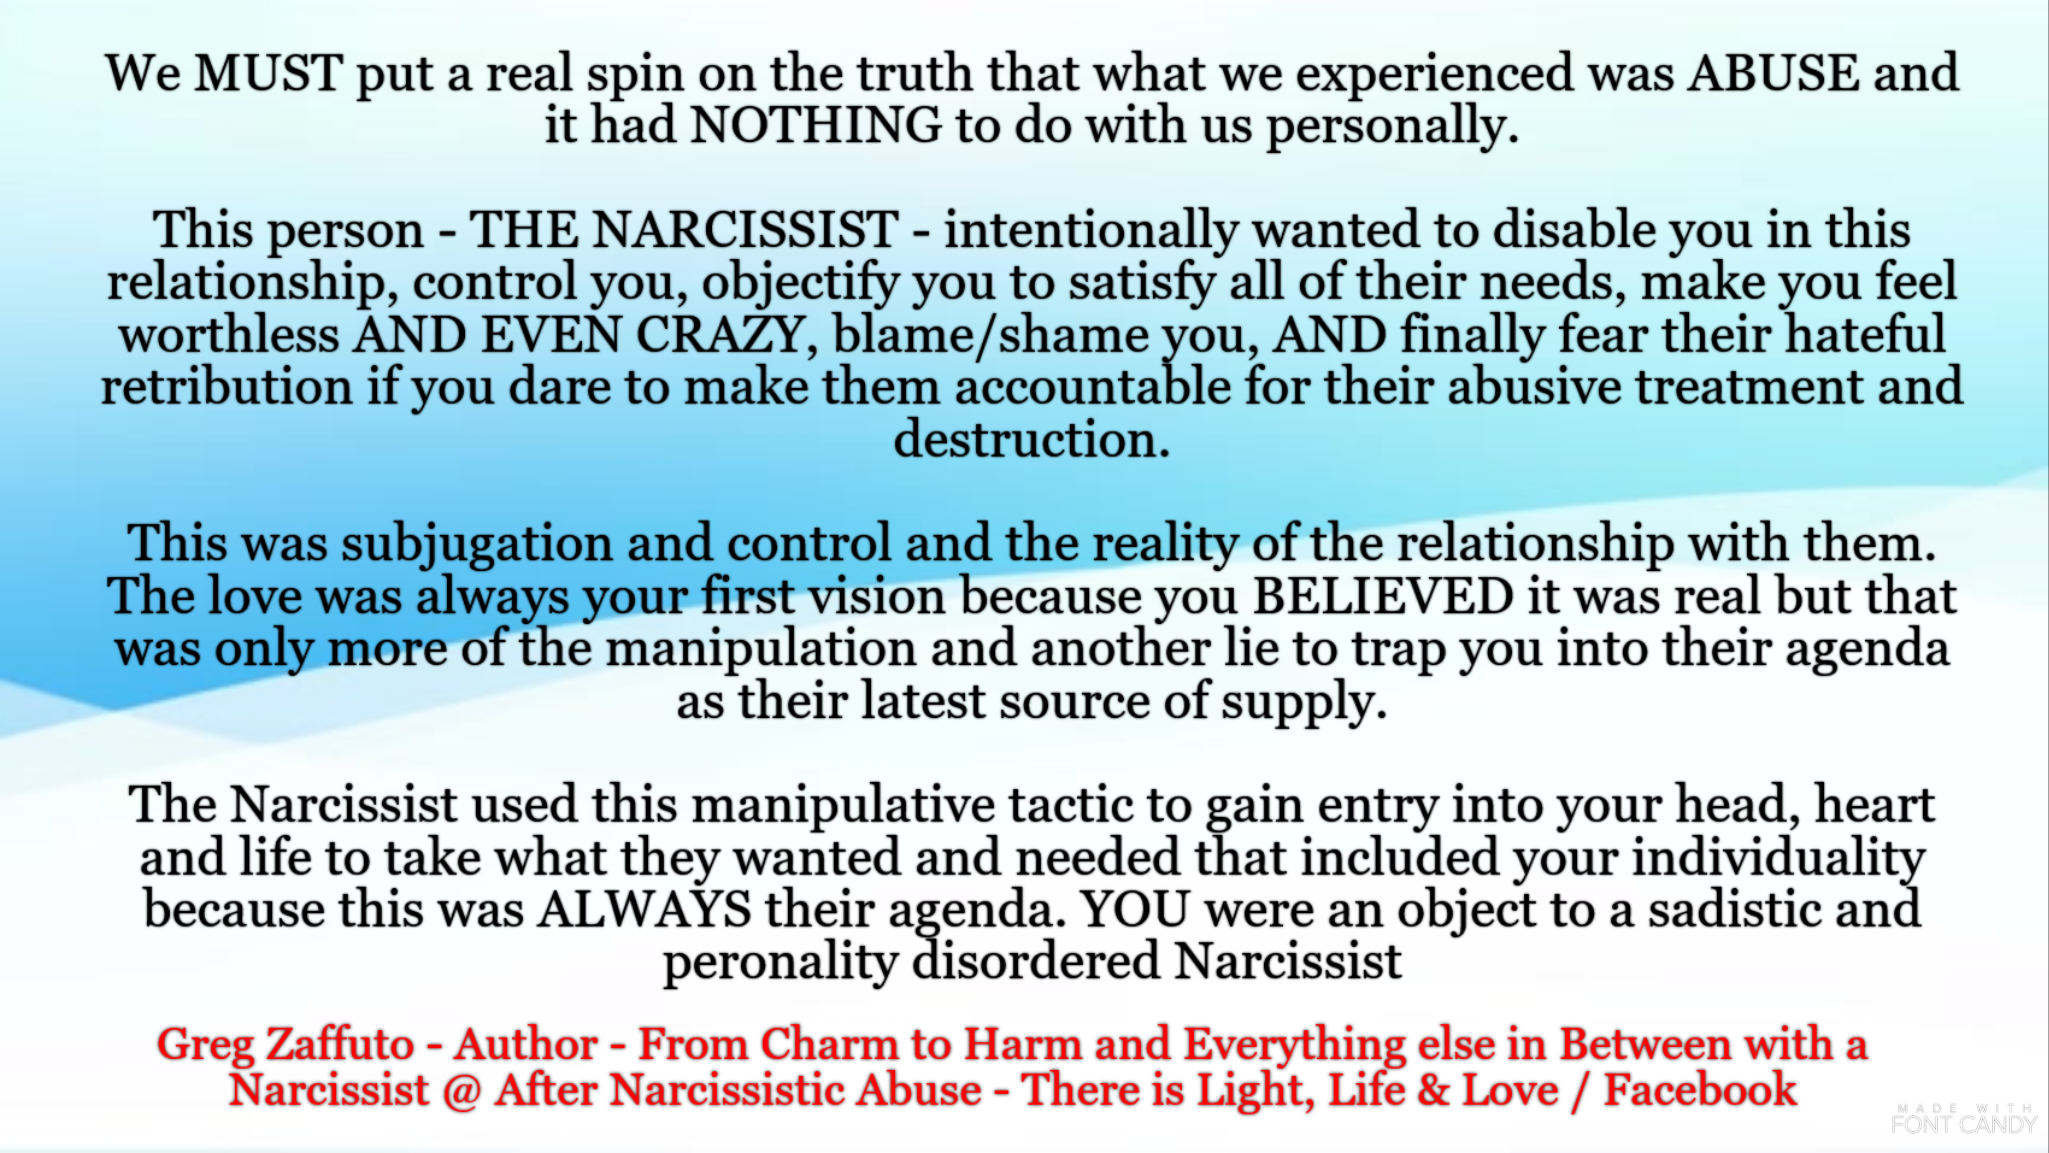 When the Narcissist's mask slips and you see what is actually behind